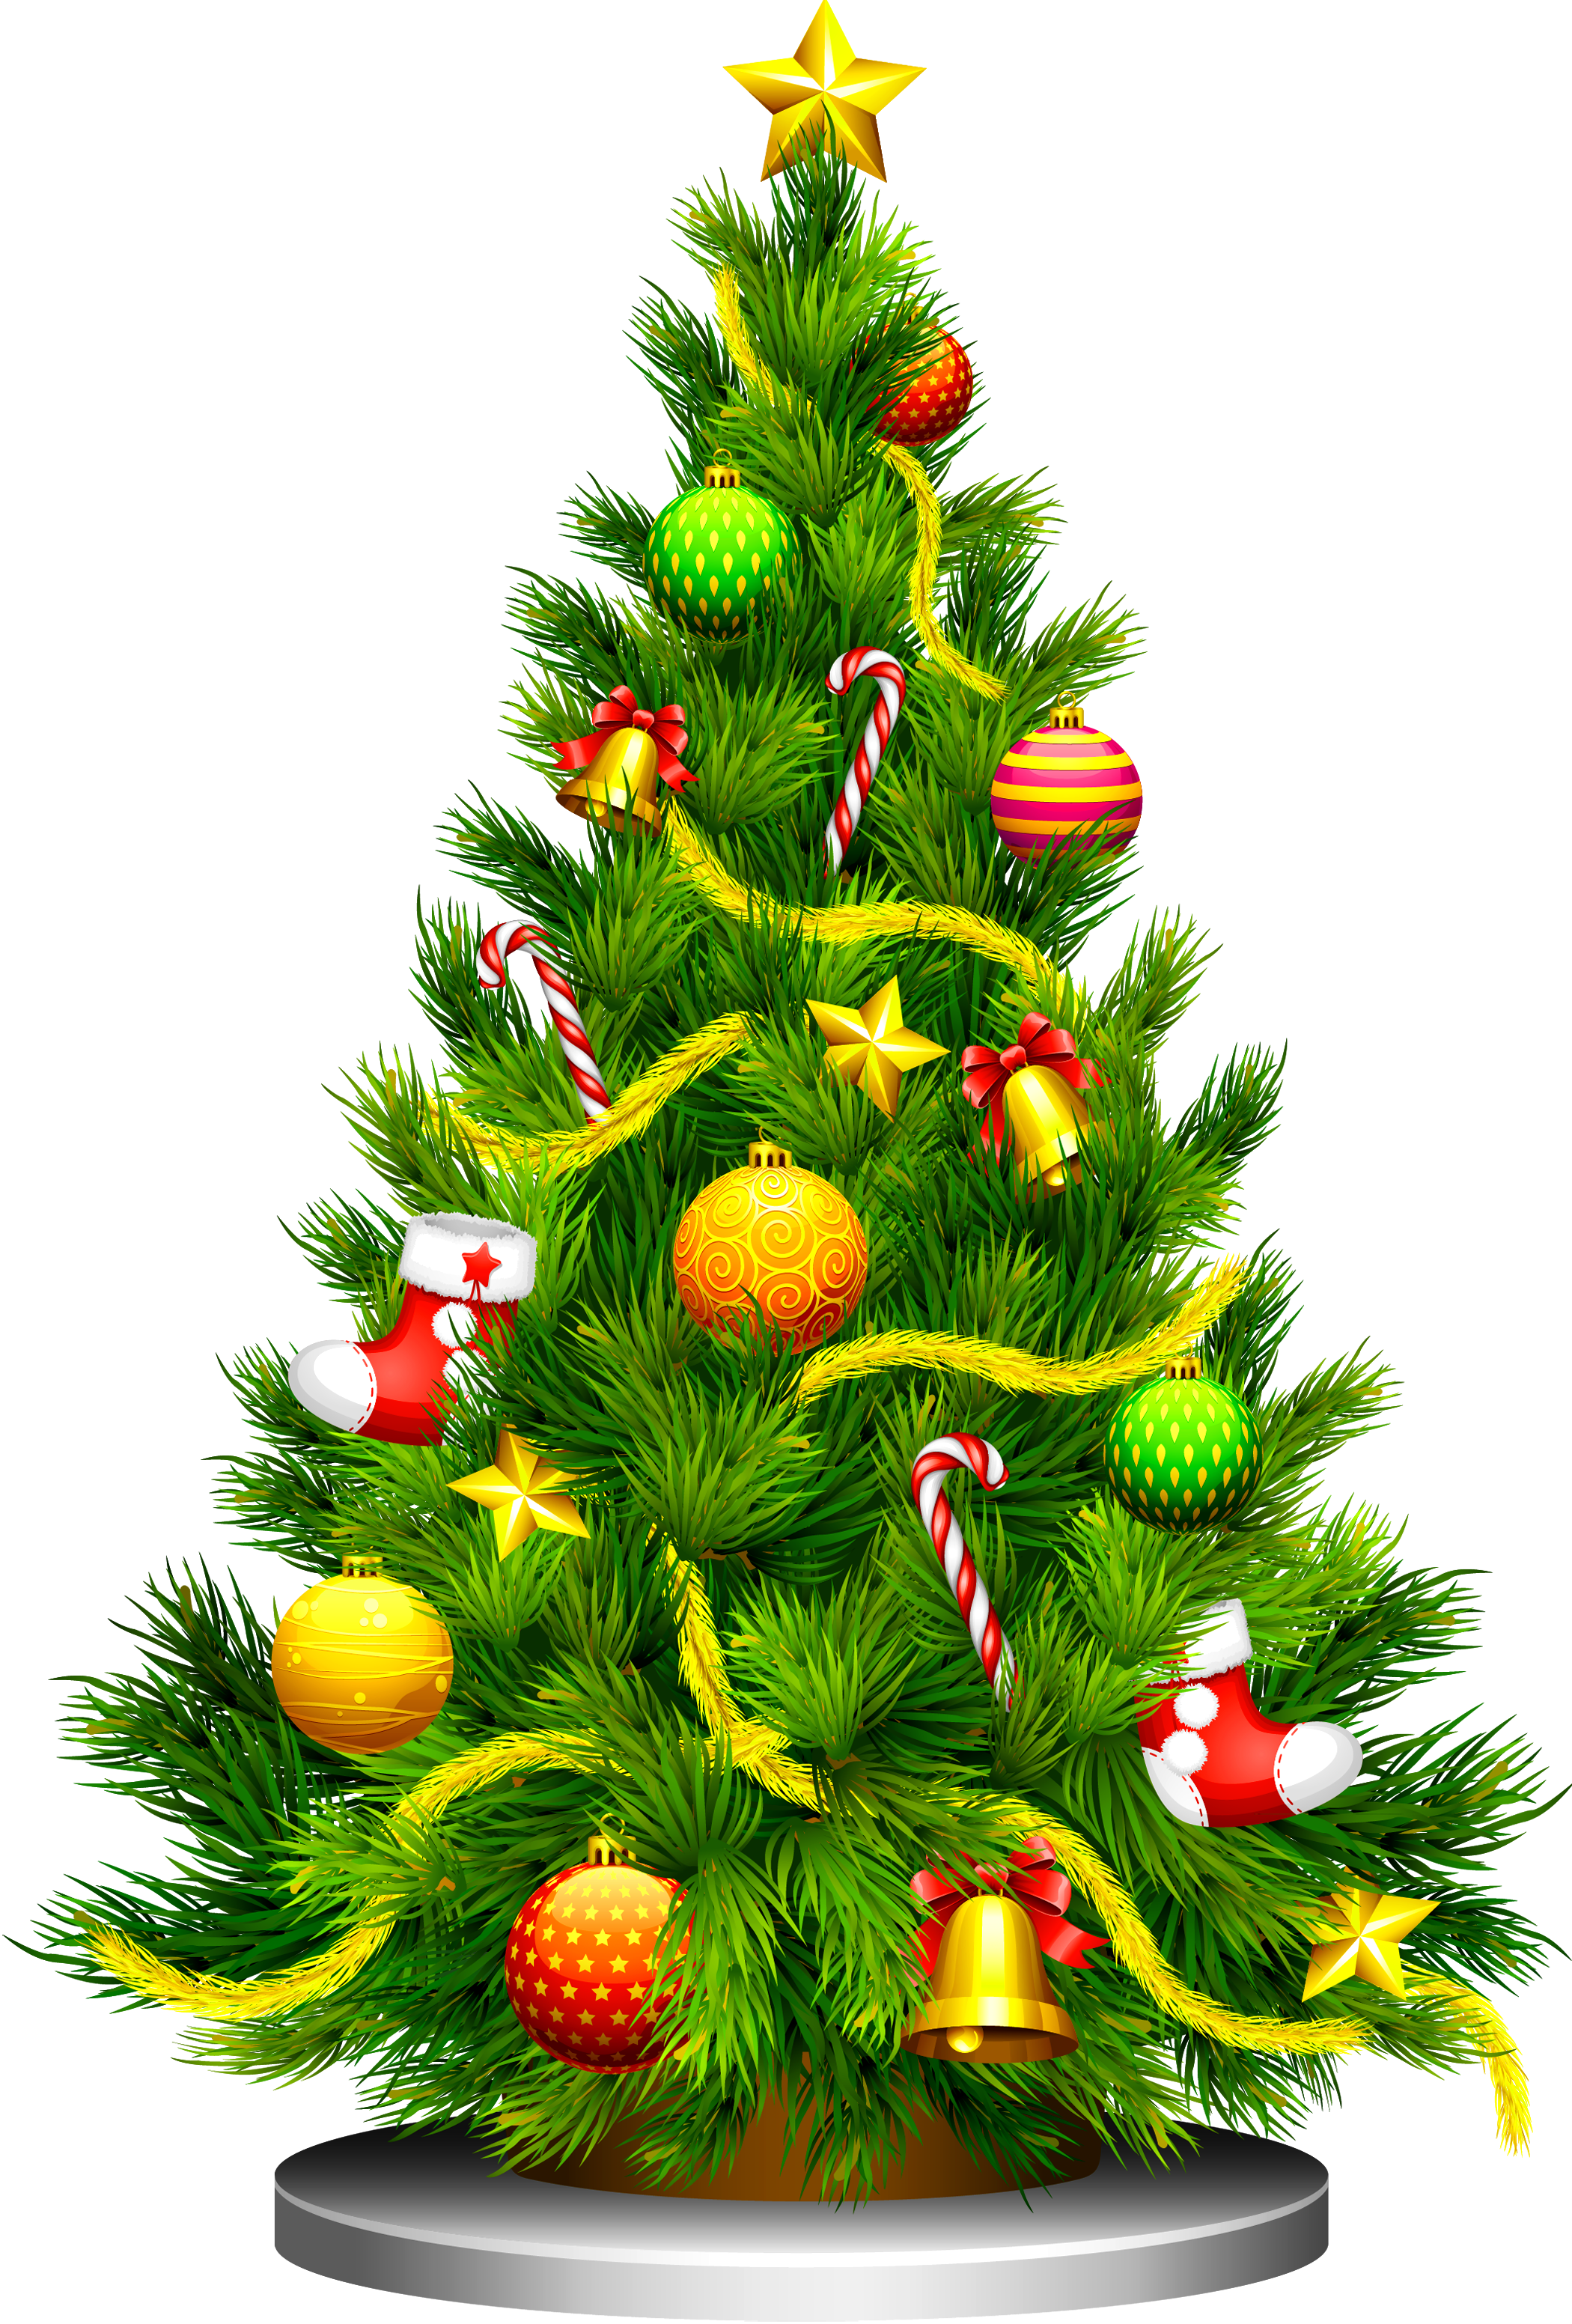 Christmas Tree Images Free Ideas In 2020 Christmas Tree Images Christmas Tree Clipart Christmas Tree With Presents